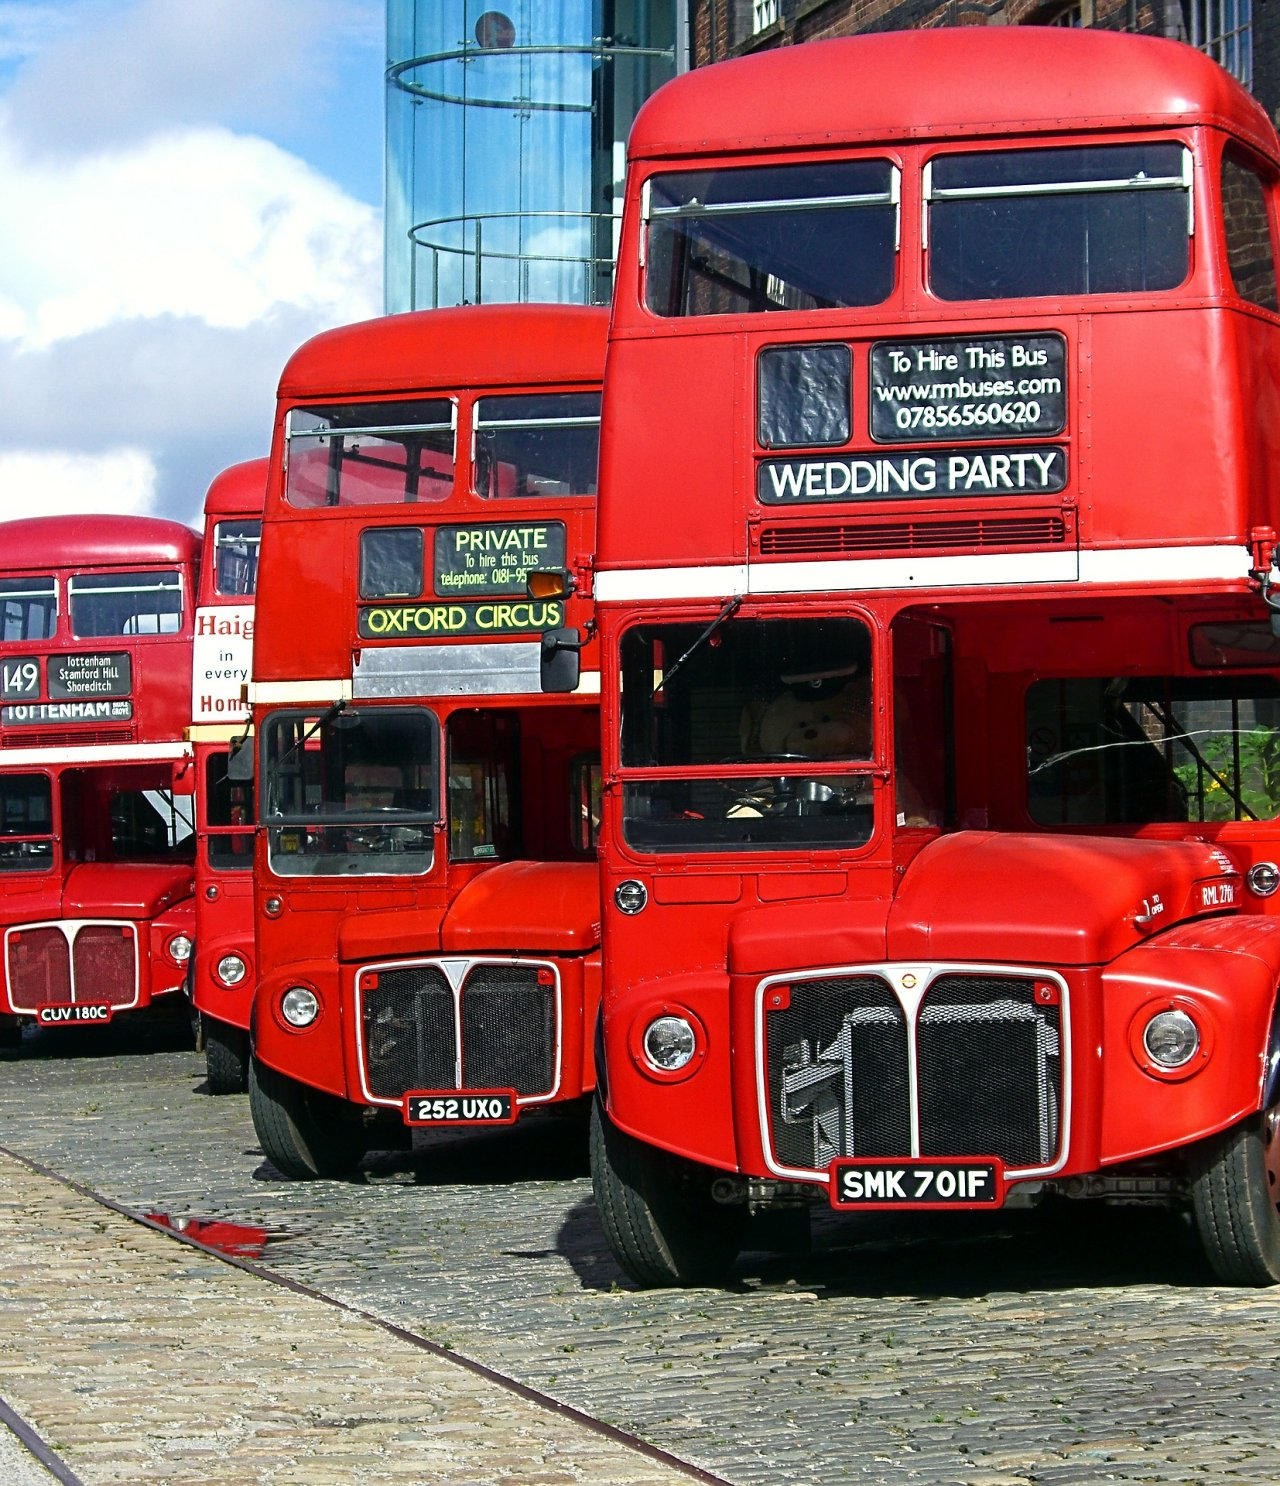 Bus Tour of London, Places to visit in London